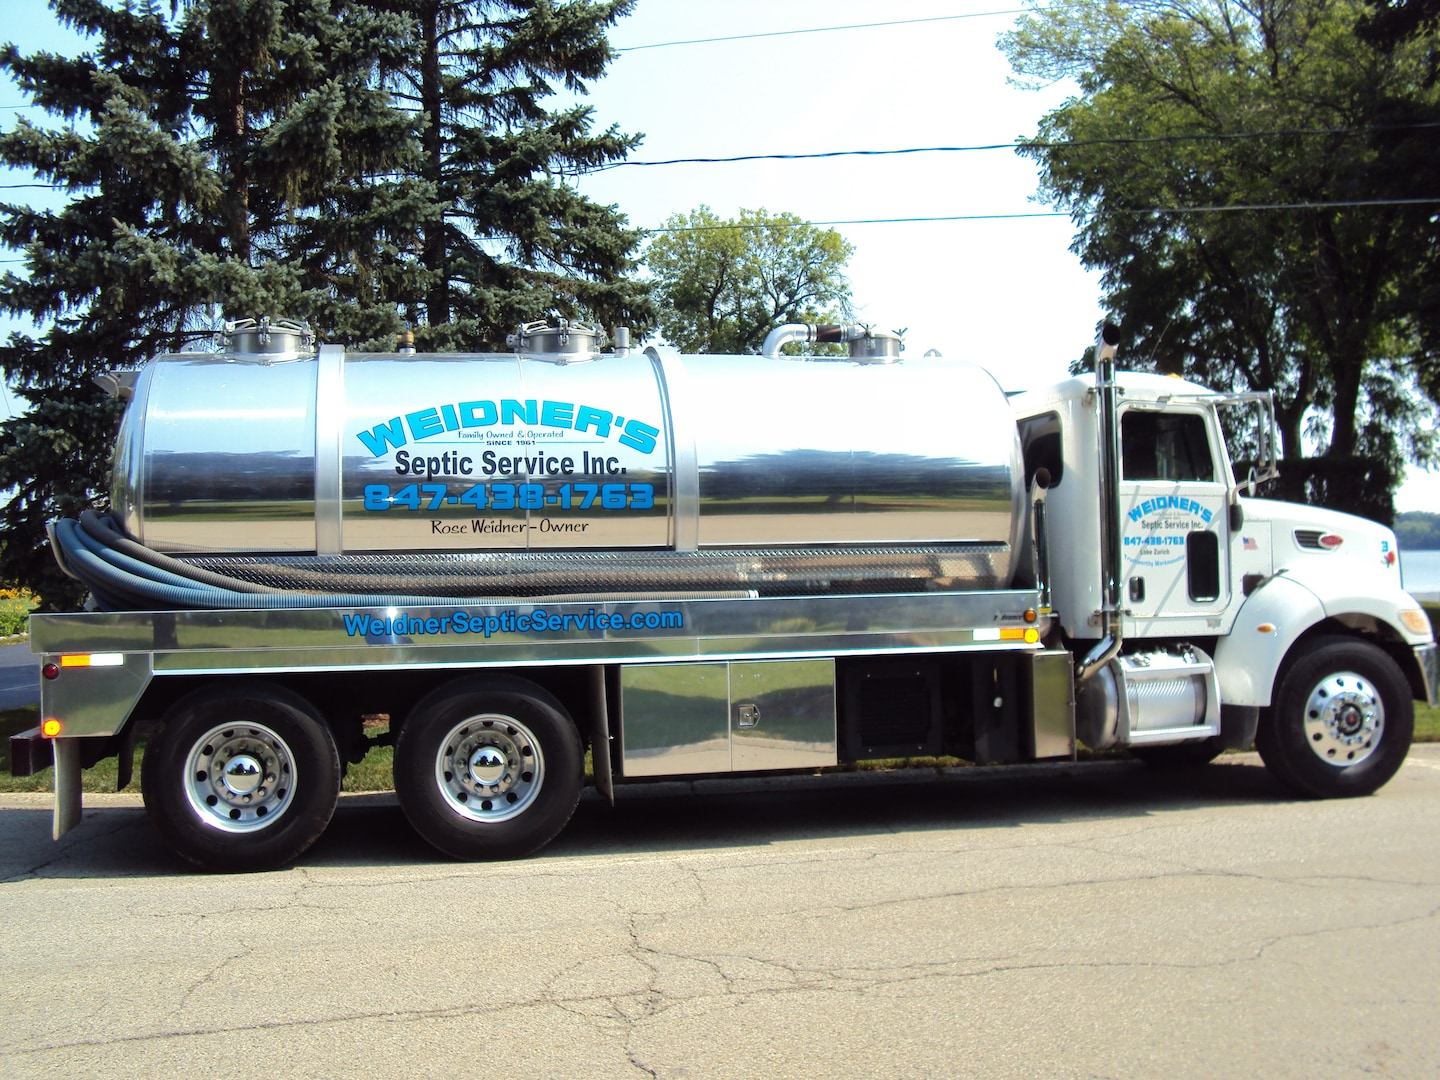 Weidner's Septic Service Inc